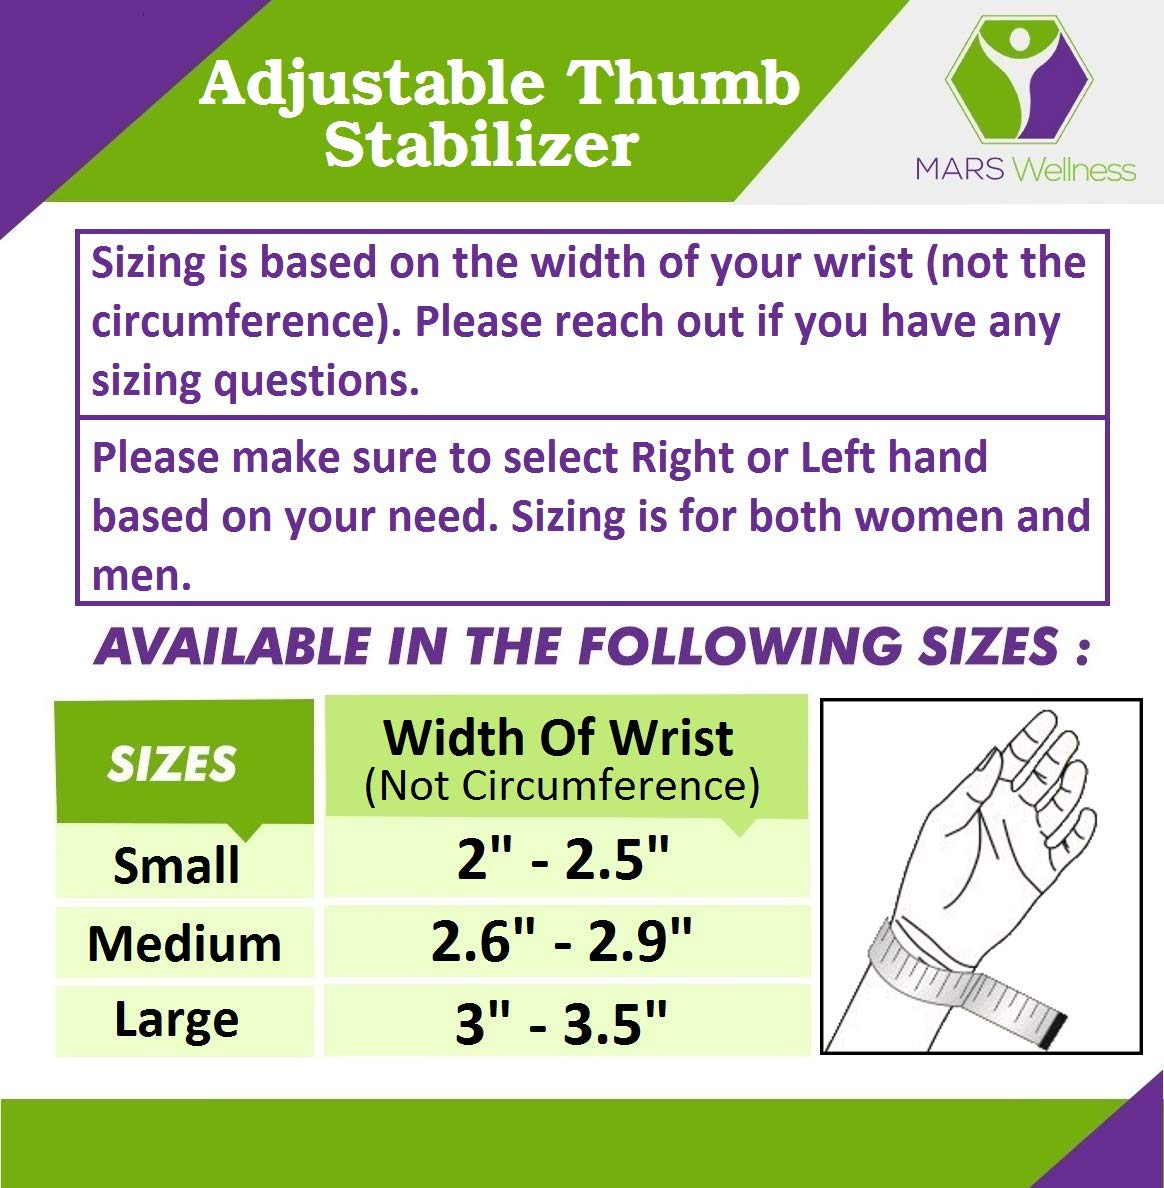 CMC Joint Thumb Arthritis Brace - Restriction Stabilizing Splint for Osteoarthritis and Other Thumb Pain Relief - Medium - Right Hand by MARS WELLNESS (Image #3)